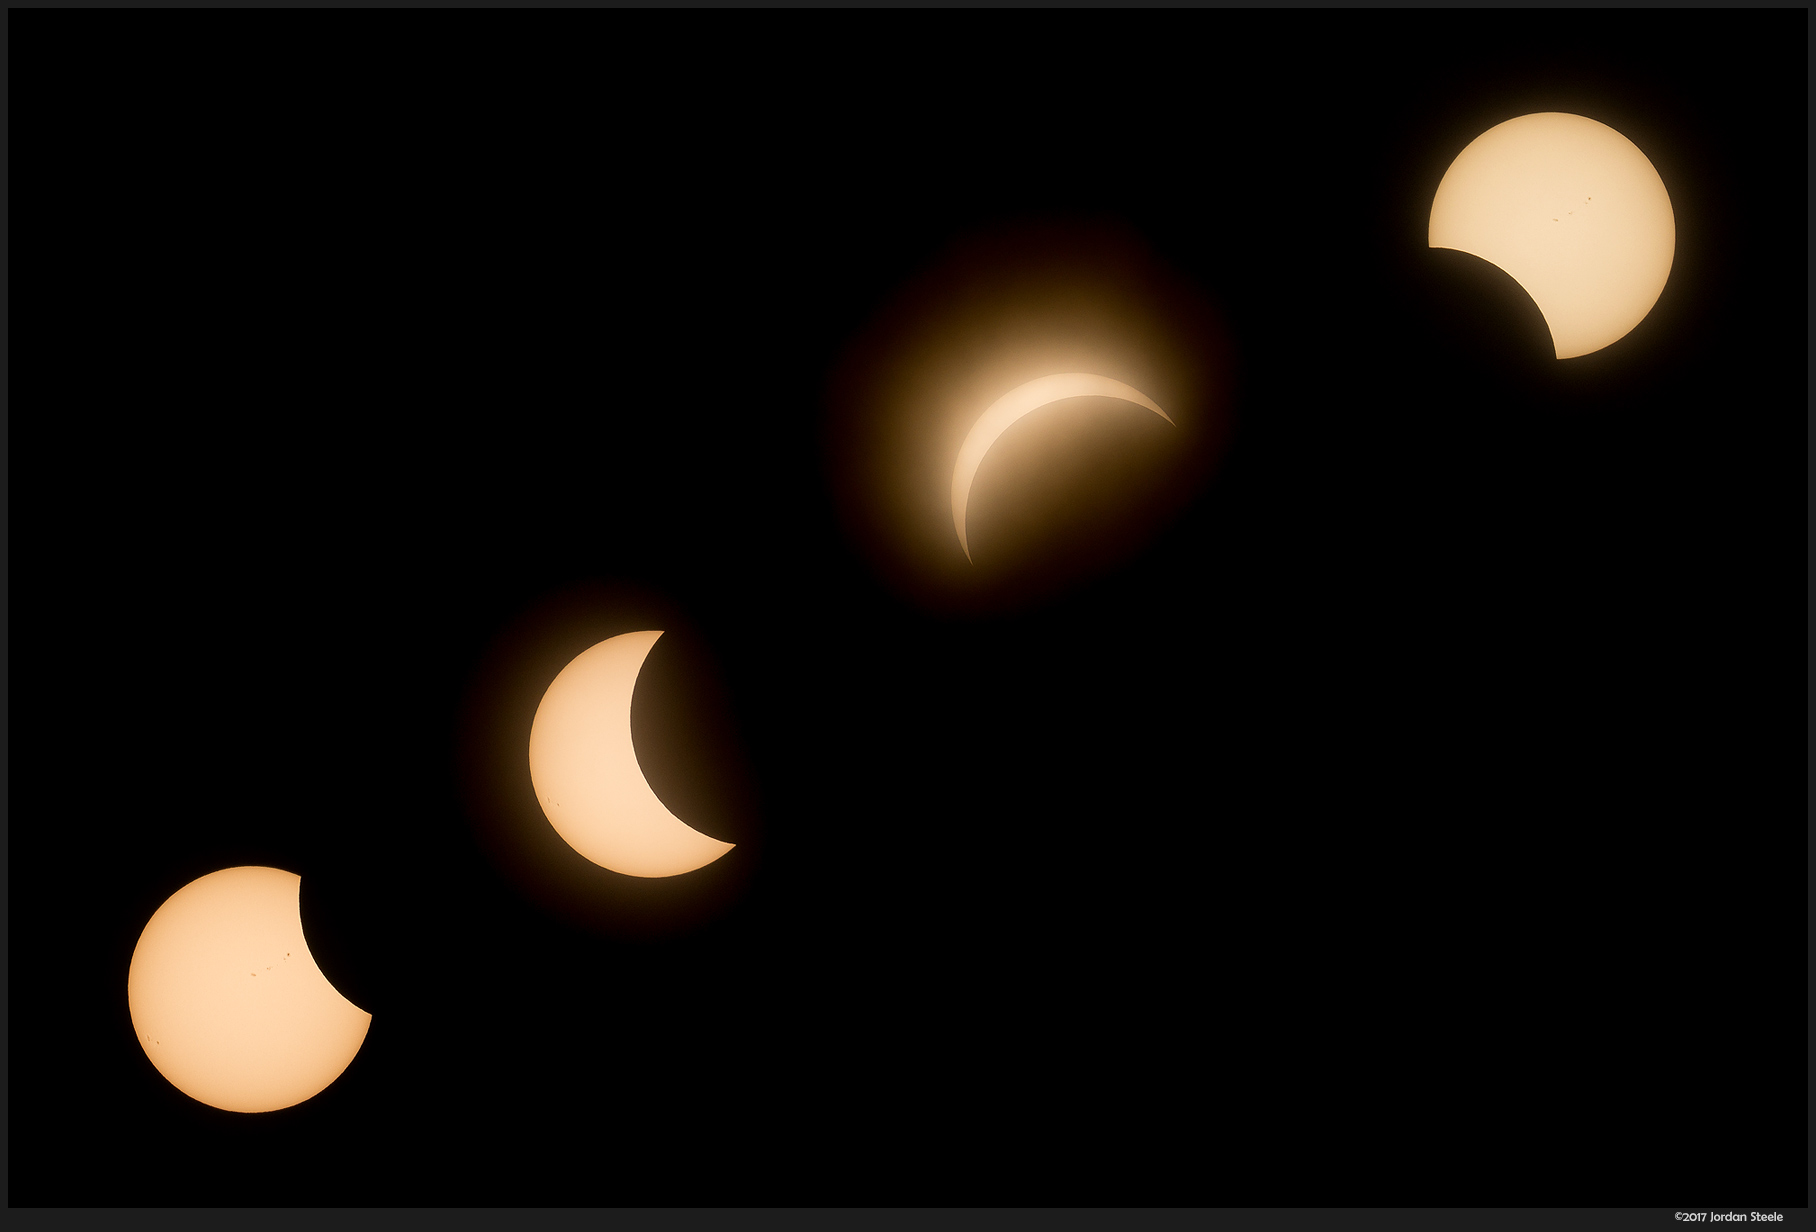 Solar Eclipse (4 shots) - Olympus OM-D E-M10 II with Olympus 75-300mm f/4.8-6.7 @ 300mm, f/